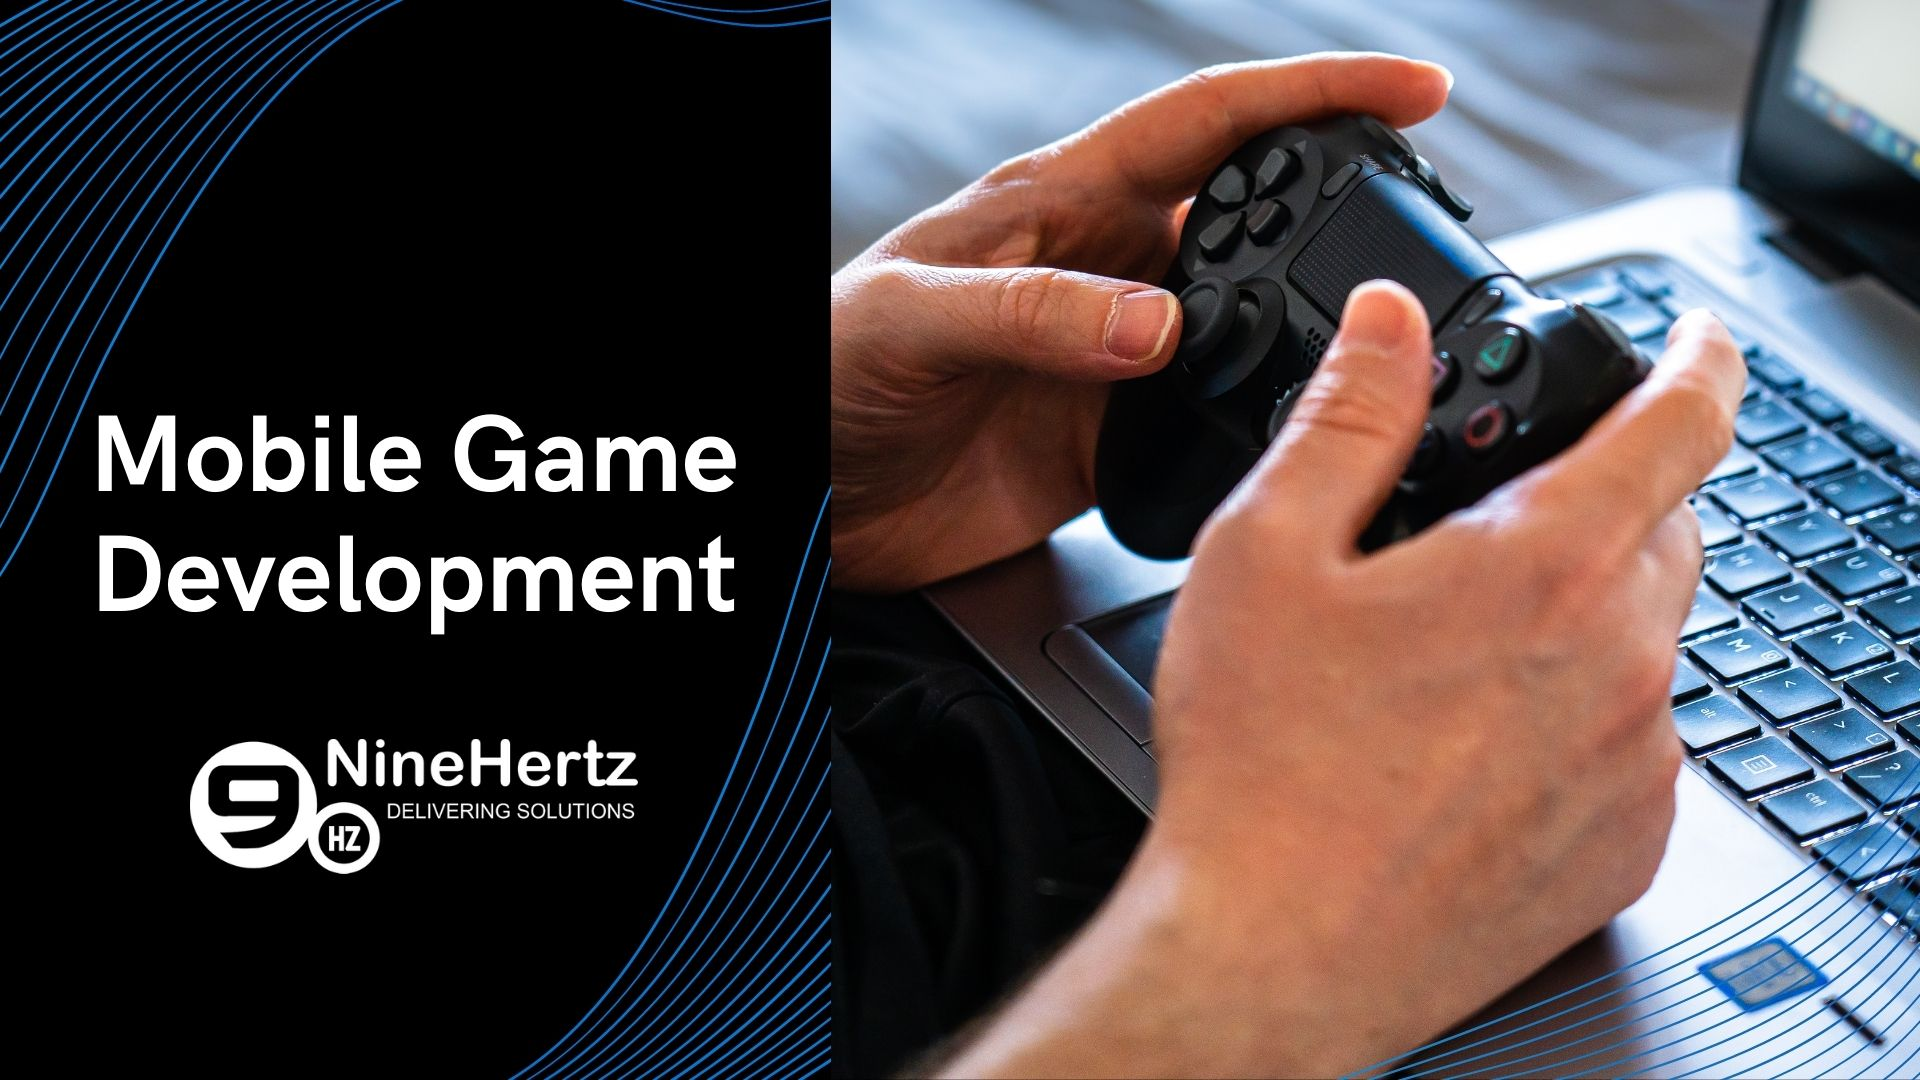 Game Development Company - The NineHertz